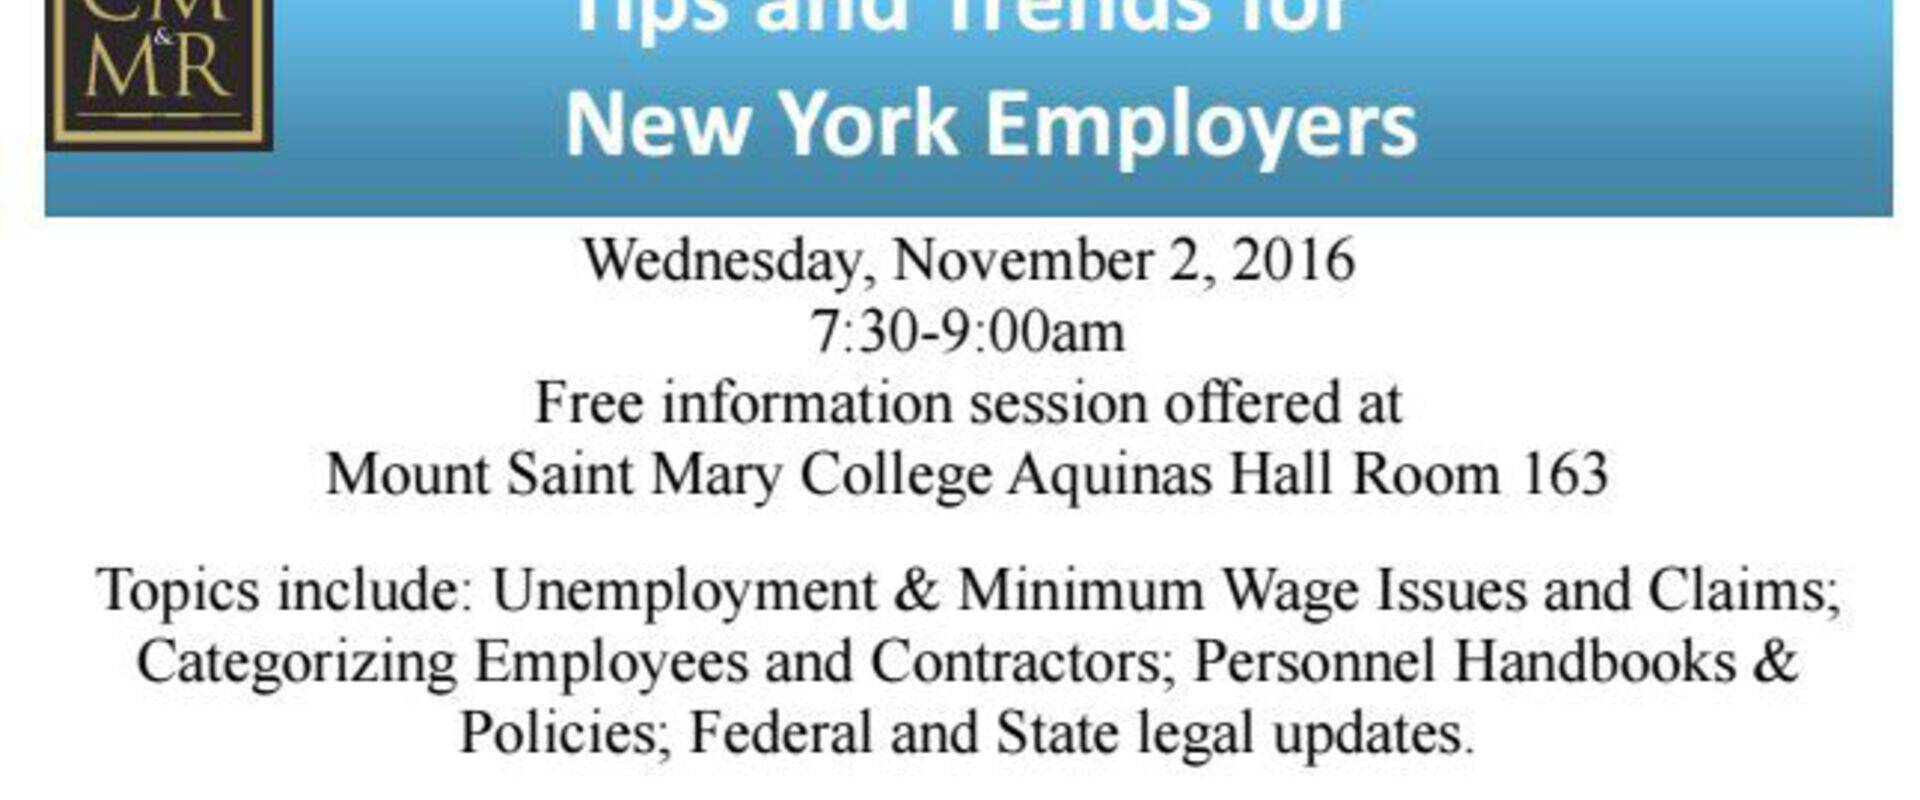 Tips and Trends for New York Employers on November 2, 2016